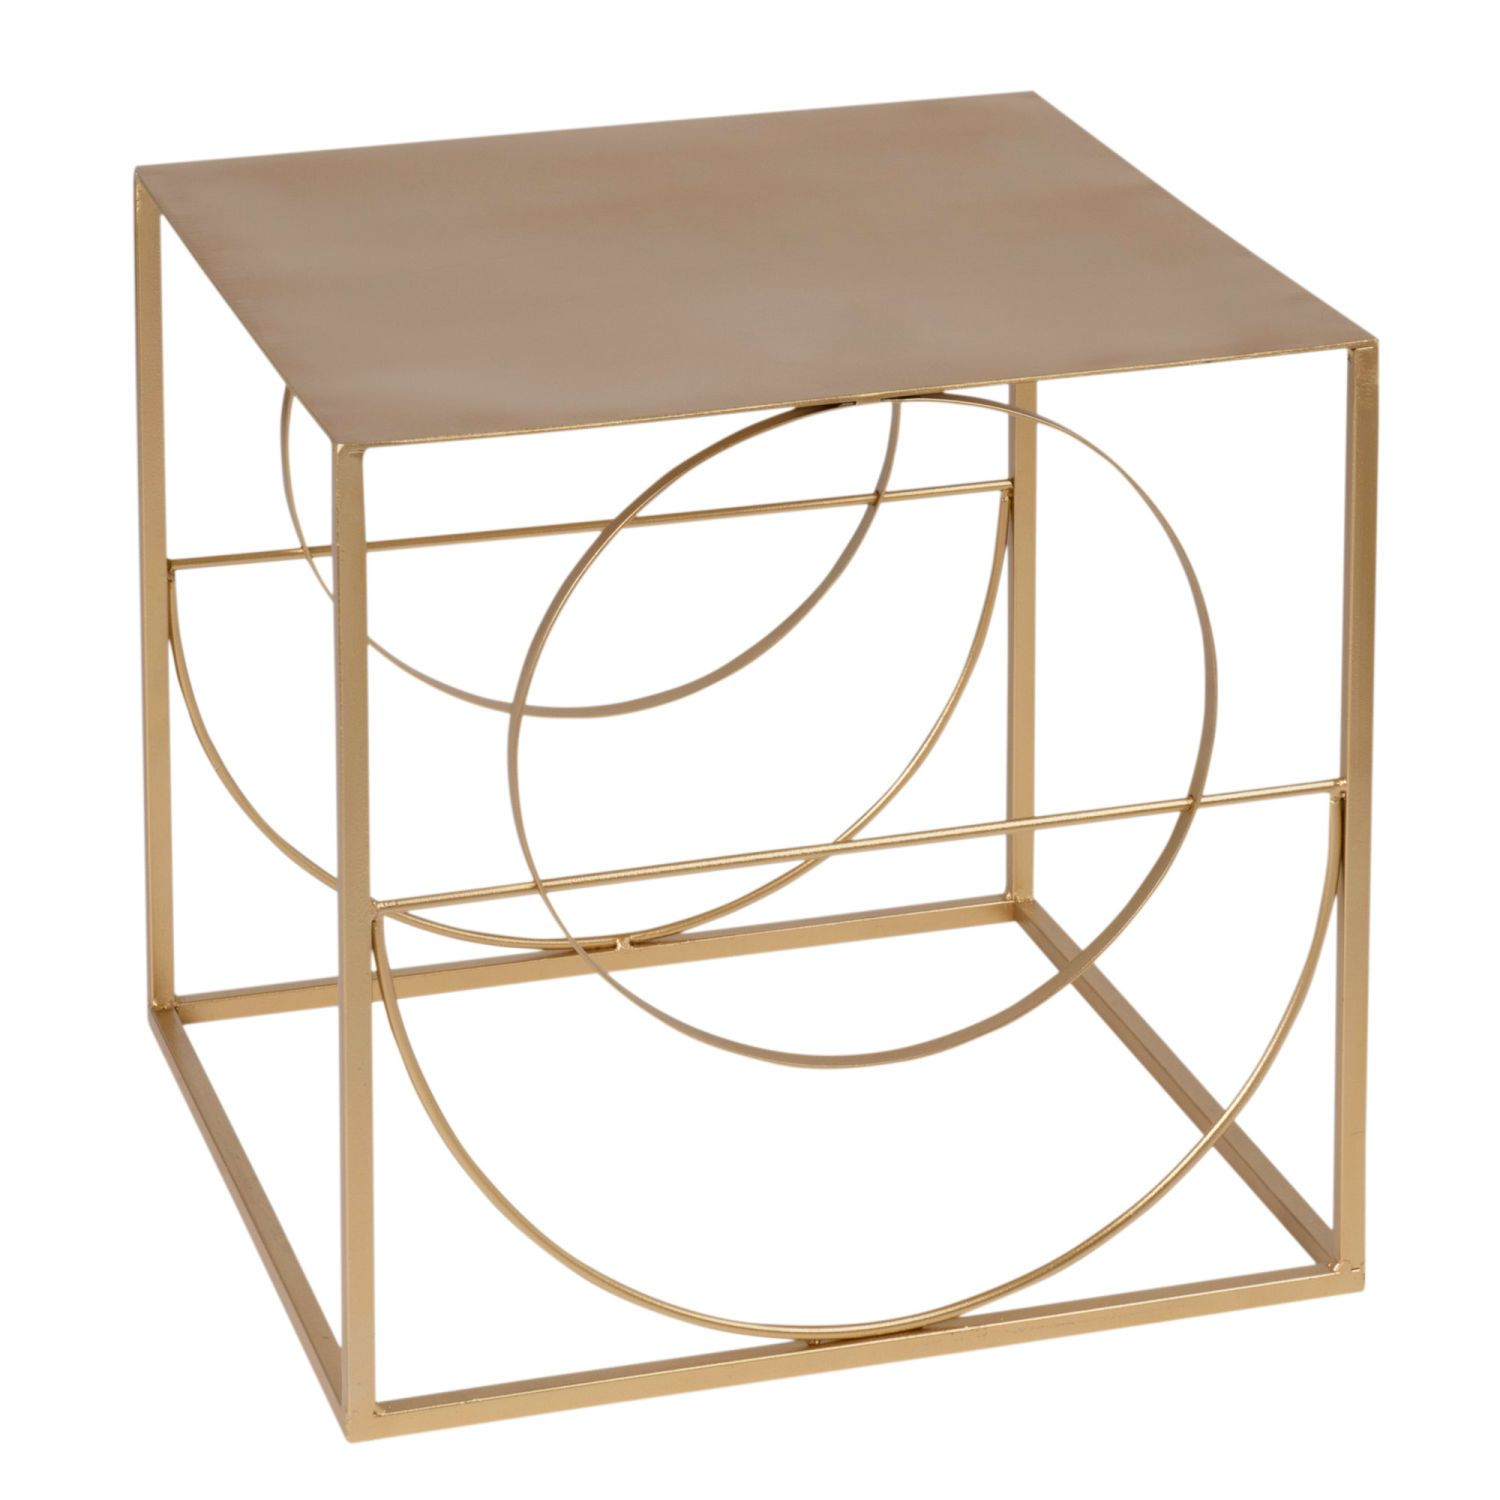 Table D Appoint Maison Du Monde.Meubles D Appoint Idees Pour La Maison Metal Side Table